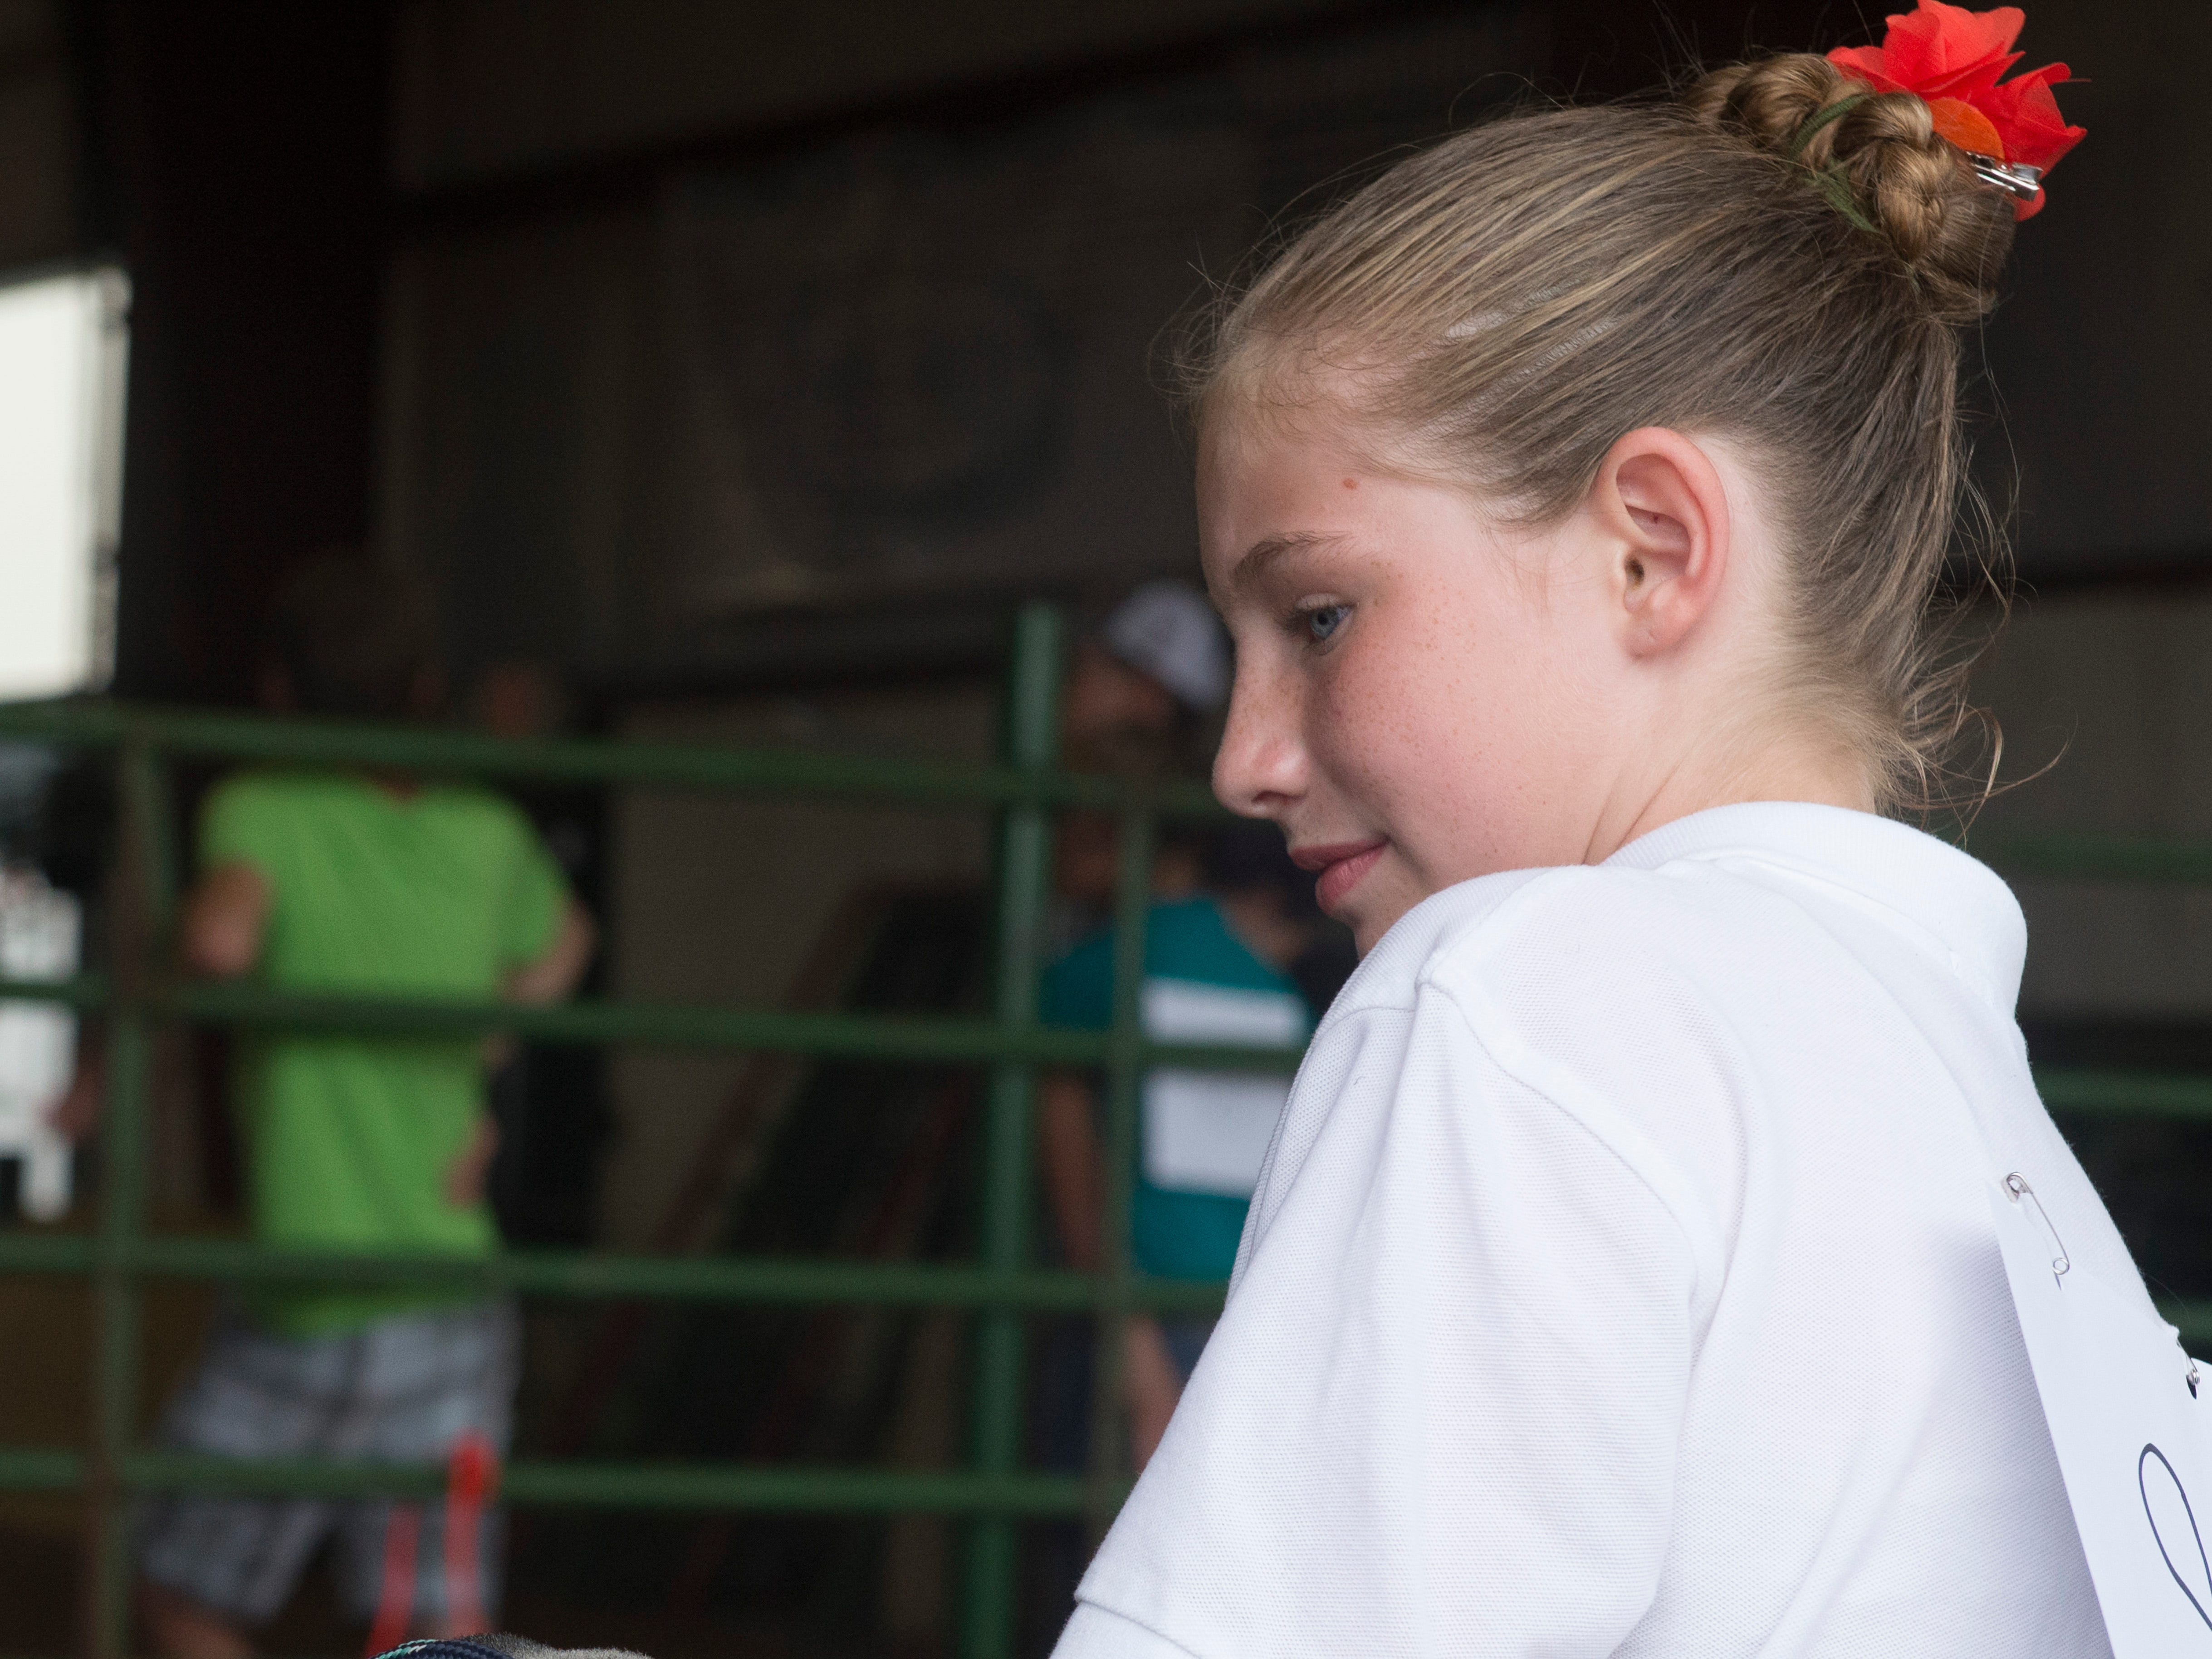 Lacy Andreadis, junior contestant, works with a sheep during the Showman of Showmen Contest in Large Animals at the Ross County Fair on August 10, 2018, in Chillicothe, Ohio.